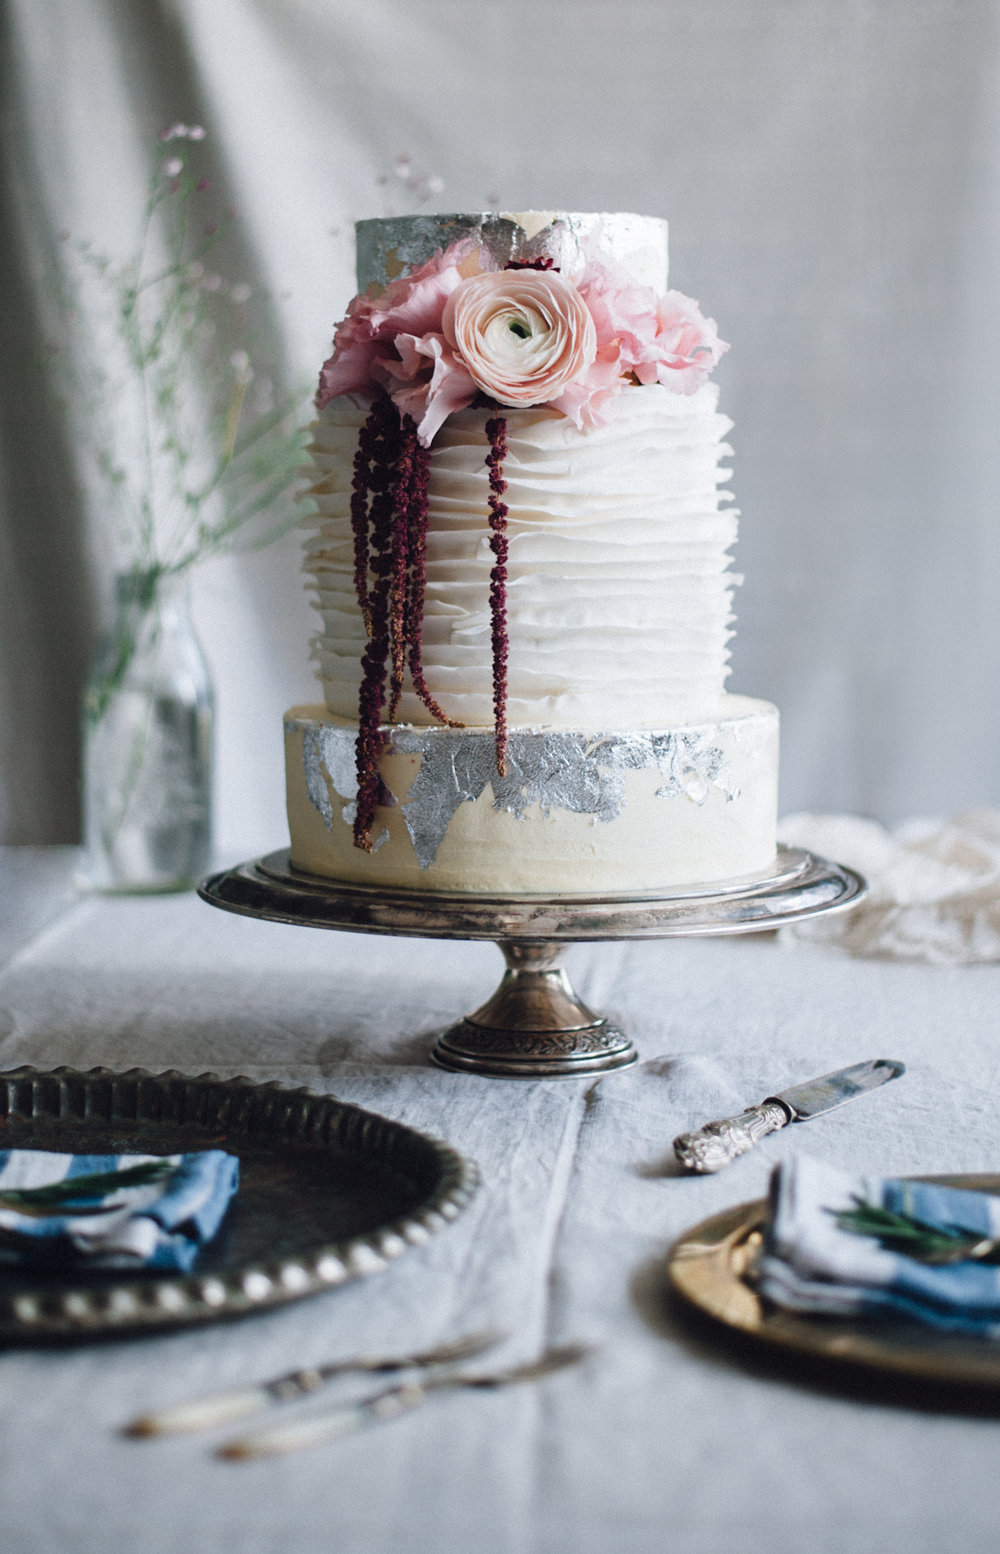 A beauty of a wedding cake created for a styled food shoot.